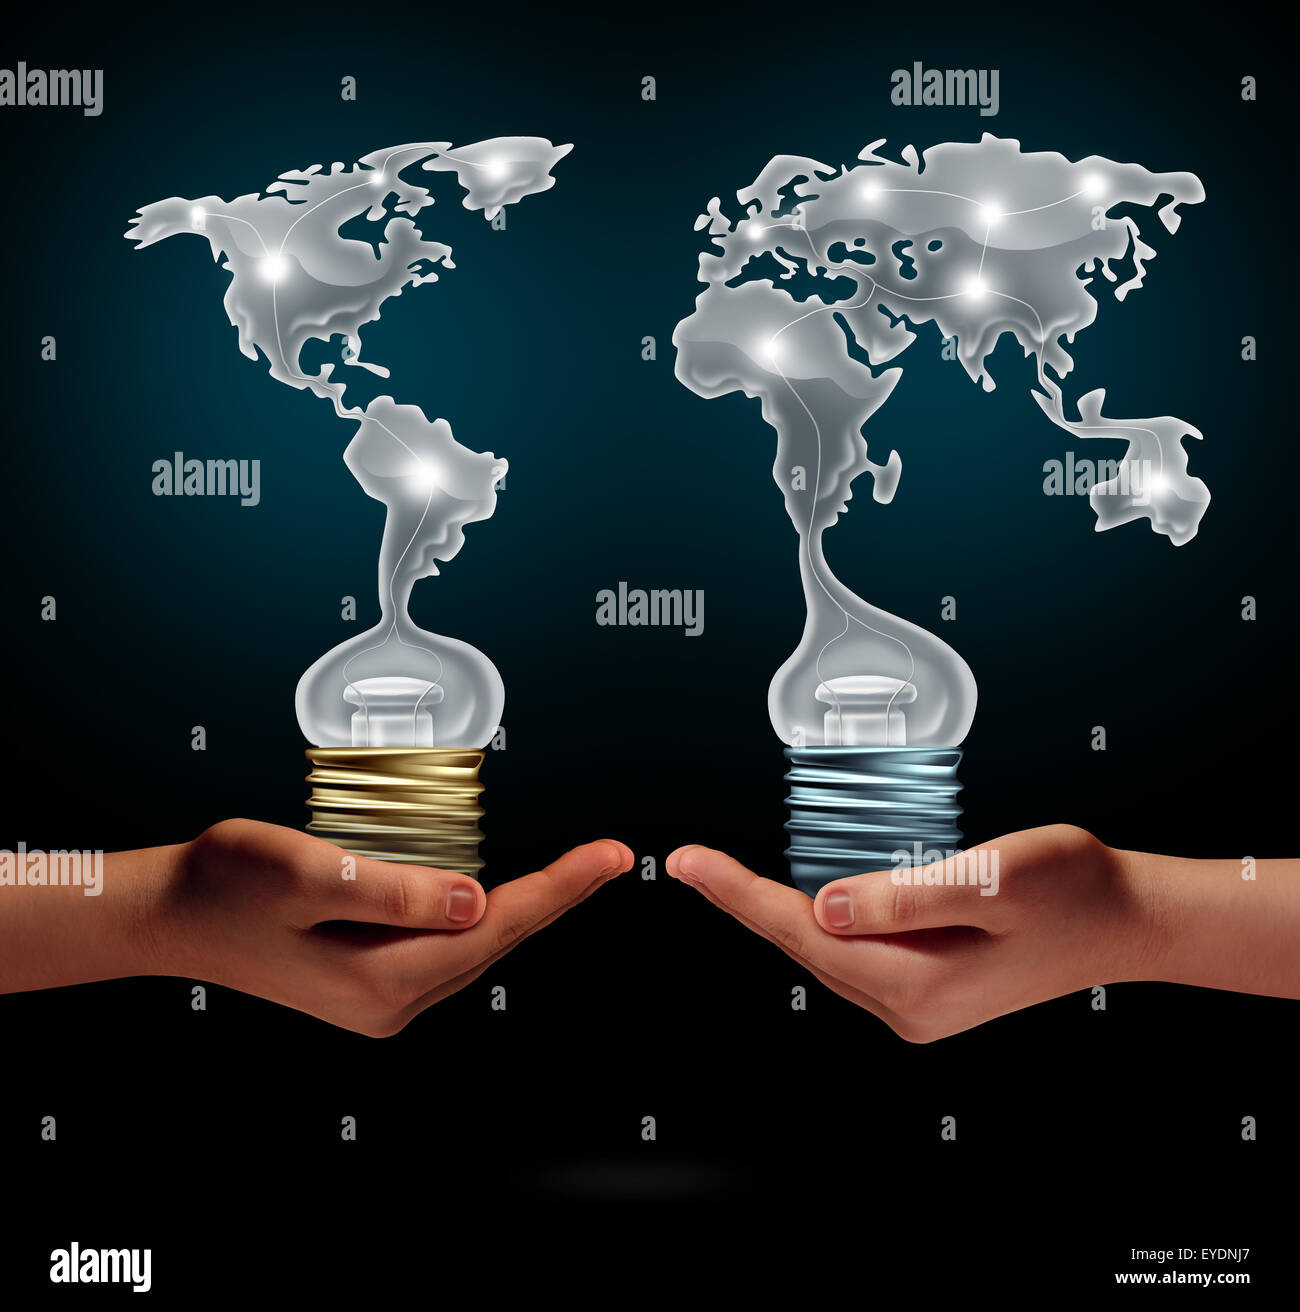 Global creativity business success concept as people holding ligh t bulbs shaped as world continents as a financial - Stock Image